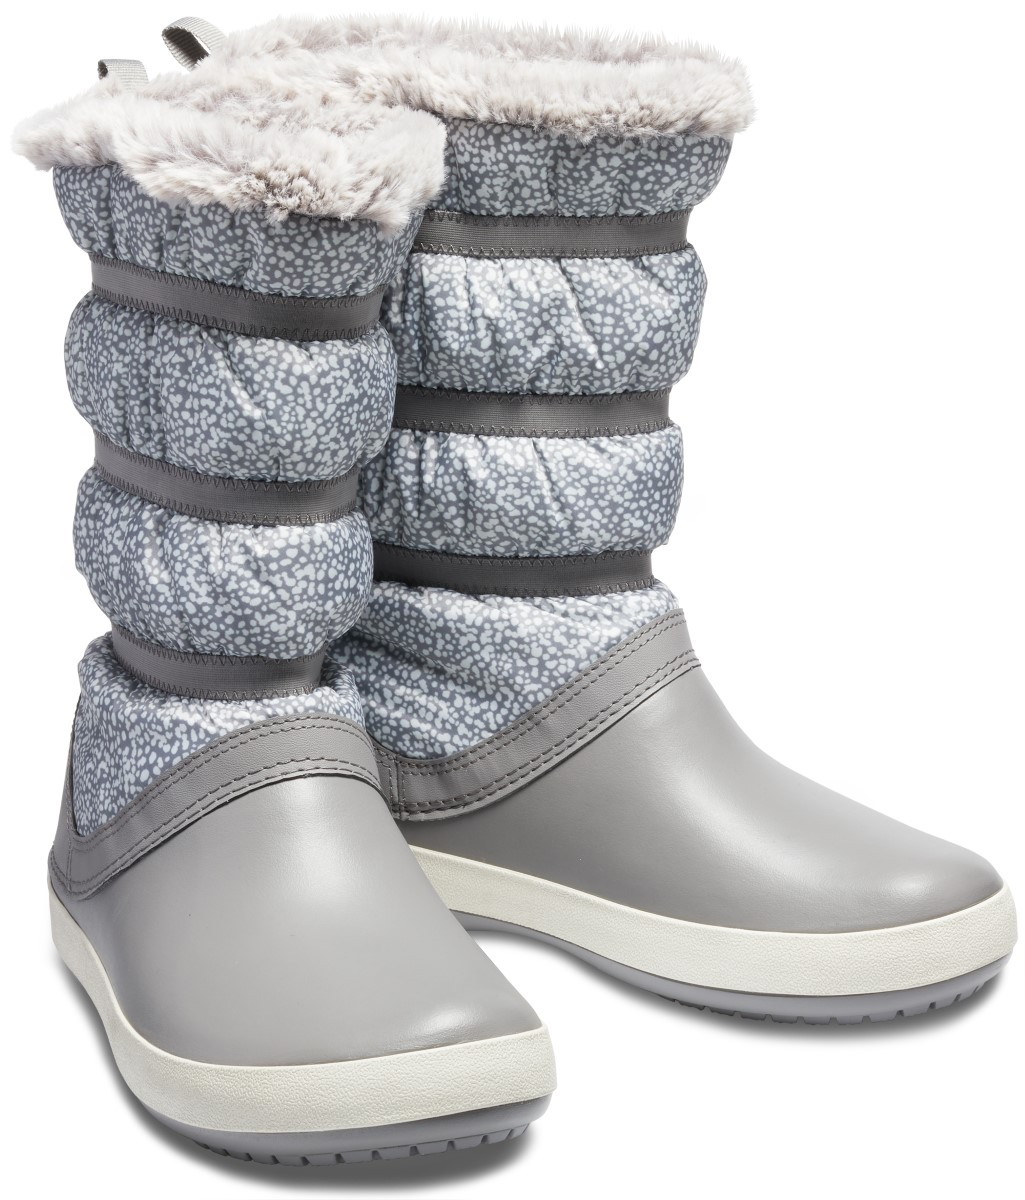 Crocs šedé sněhule Crocband Winter Boot Dots/Smoke